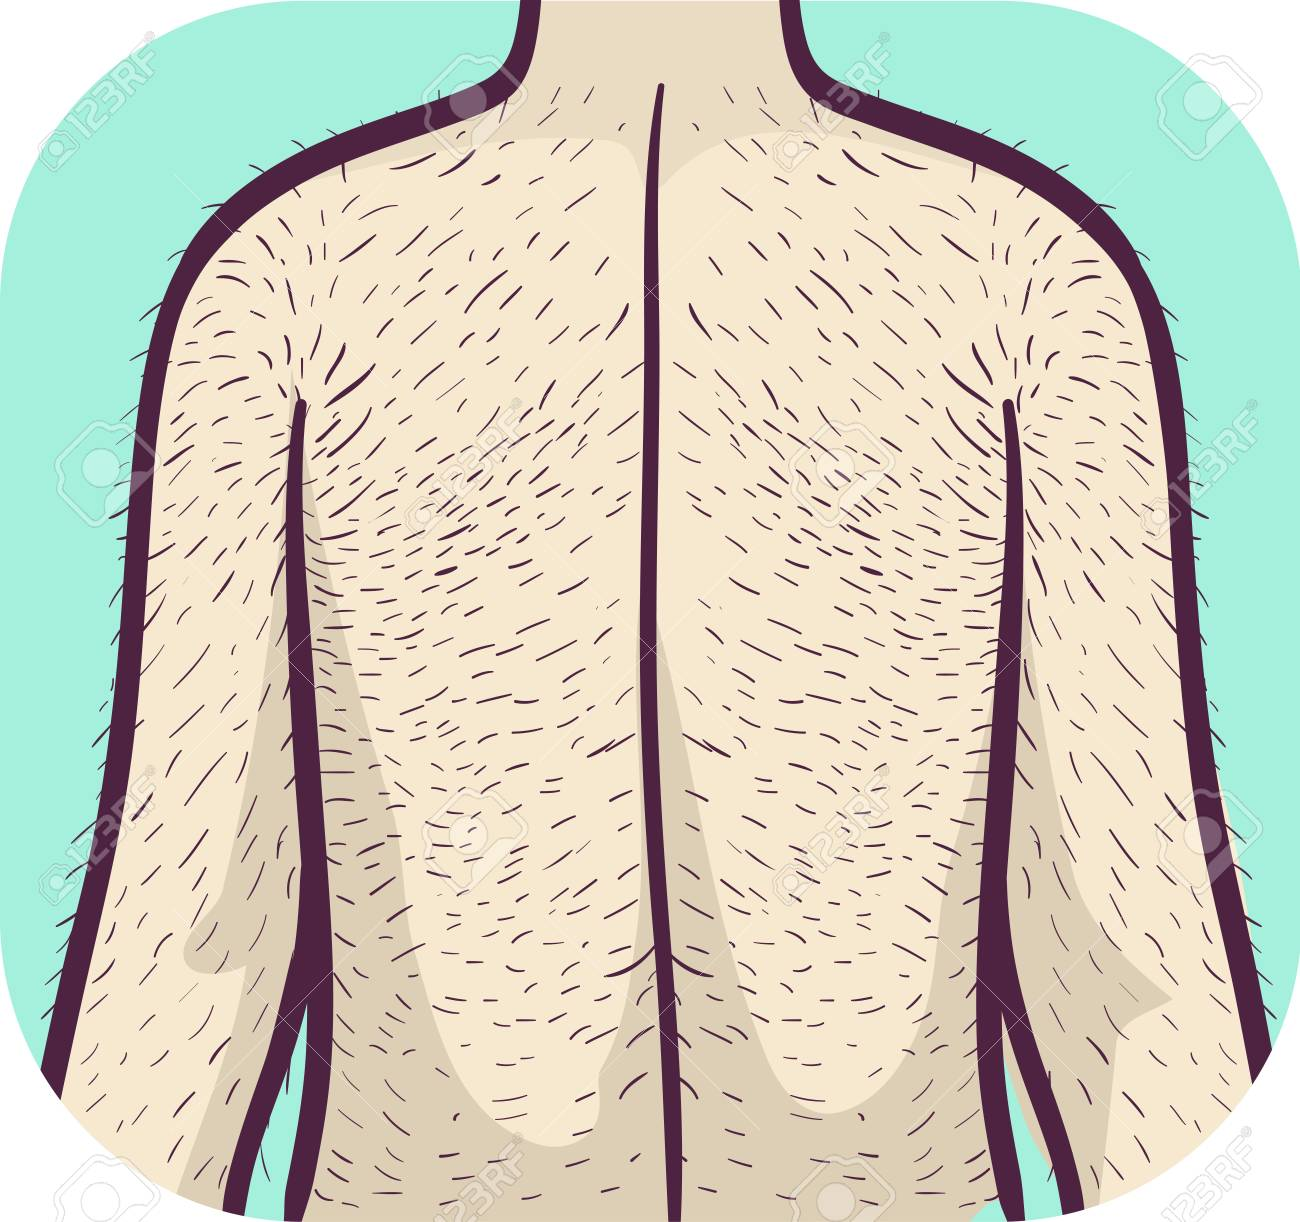 Illustration - Illustration of a Man with Excessive Hairy Back and Arms.  Hypertrichosis Health Problem